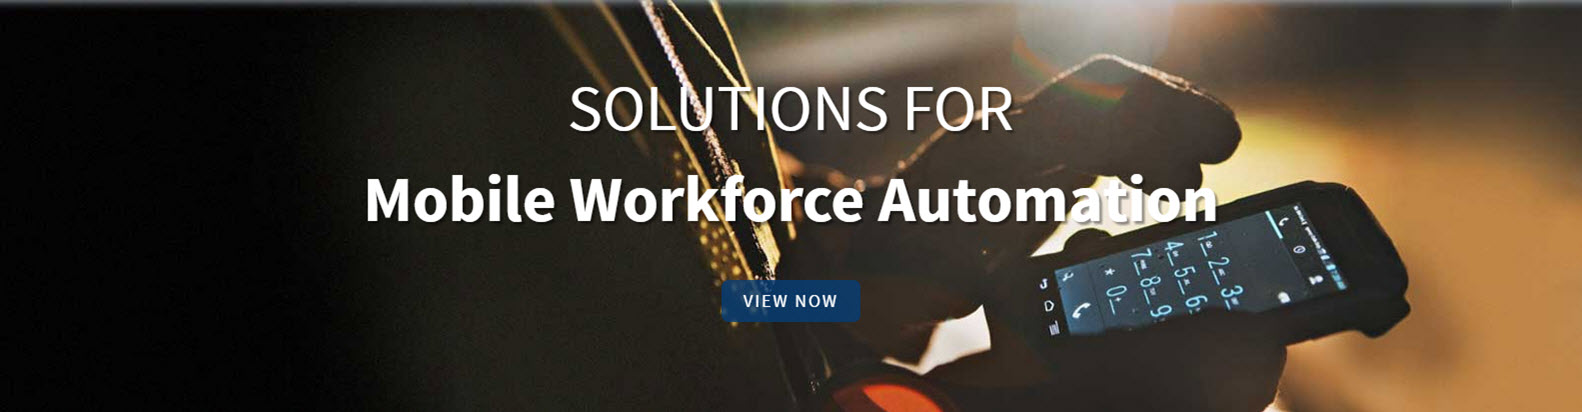 Mobile Workforce Automation